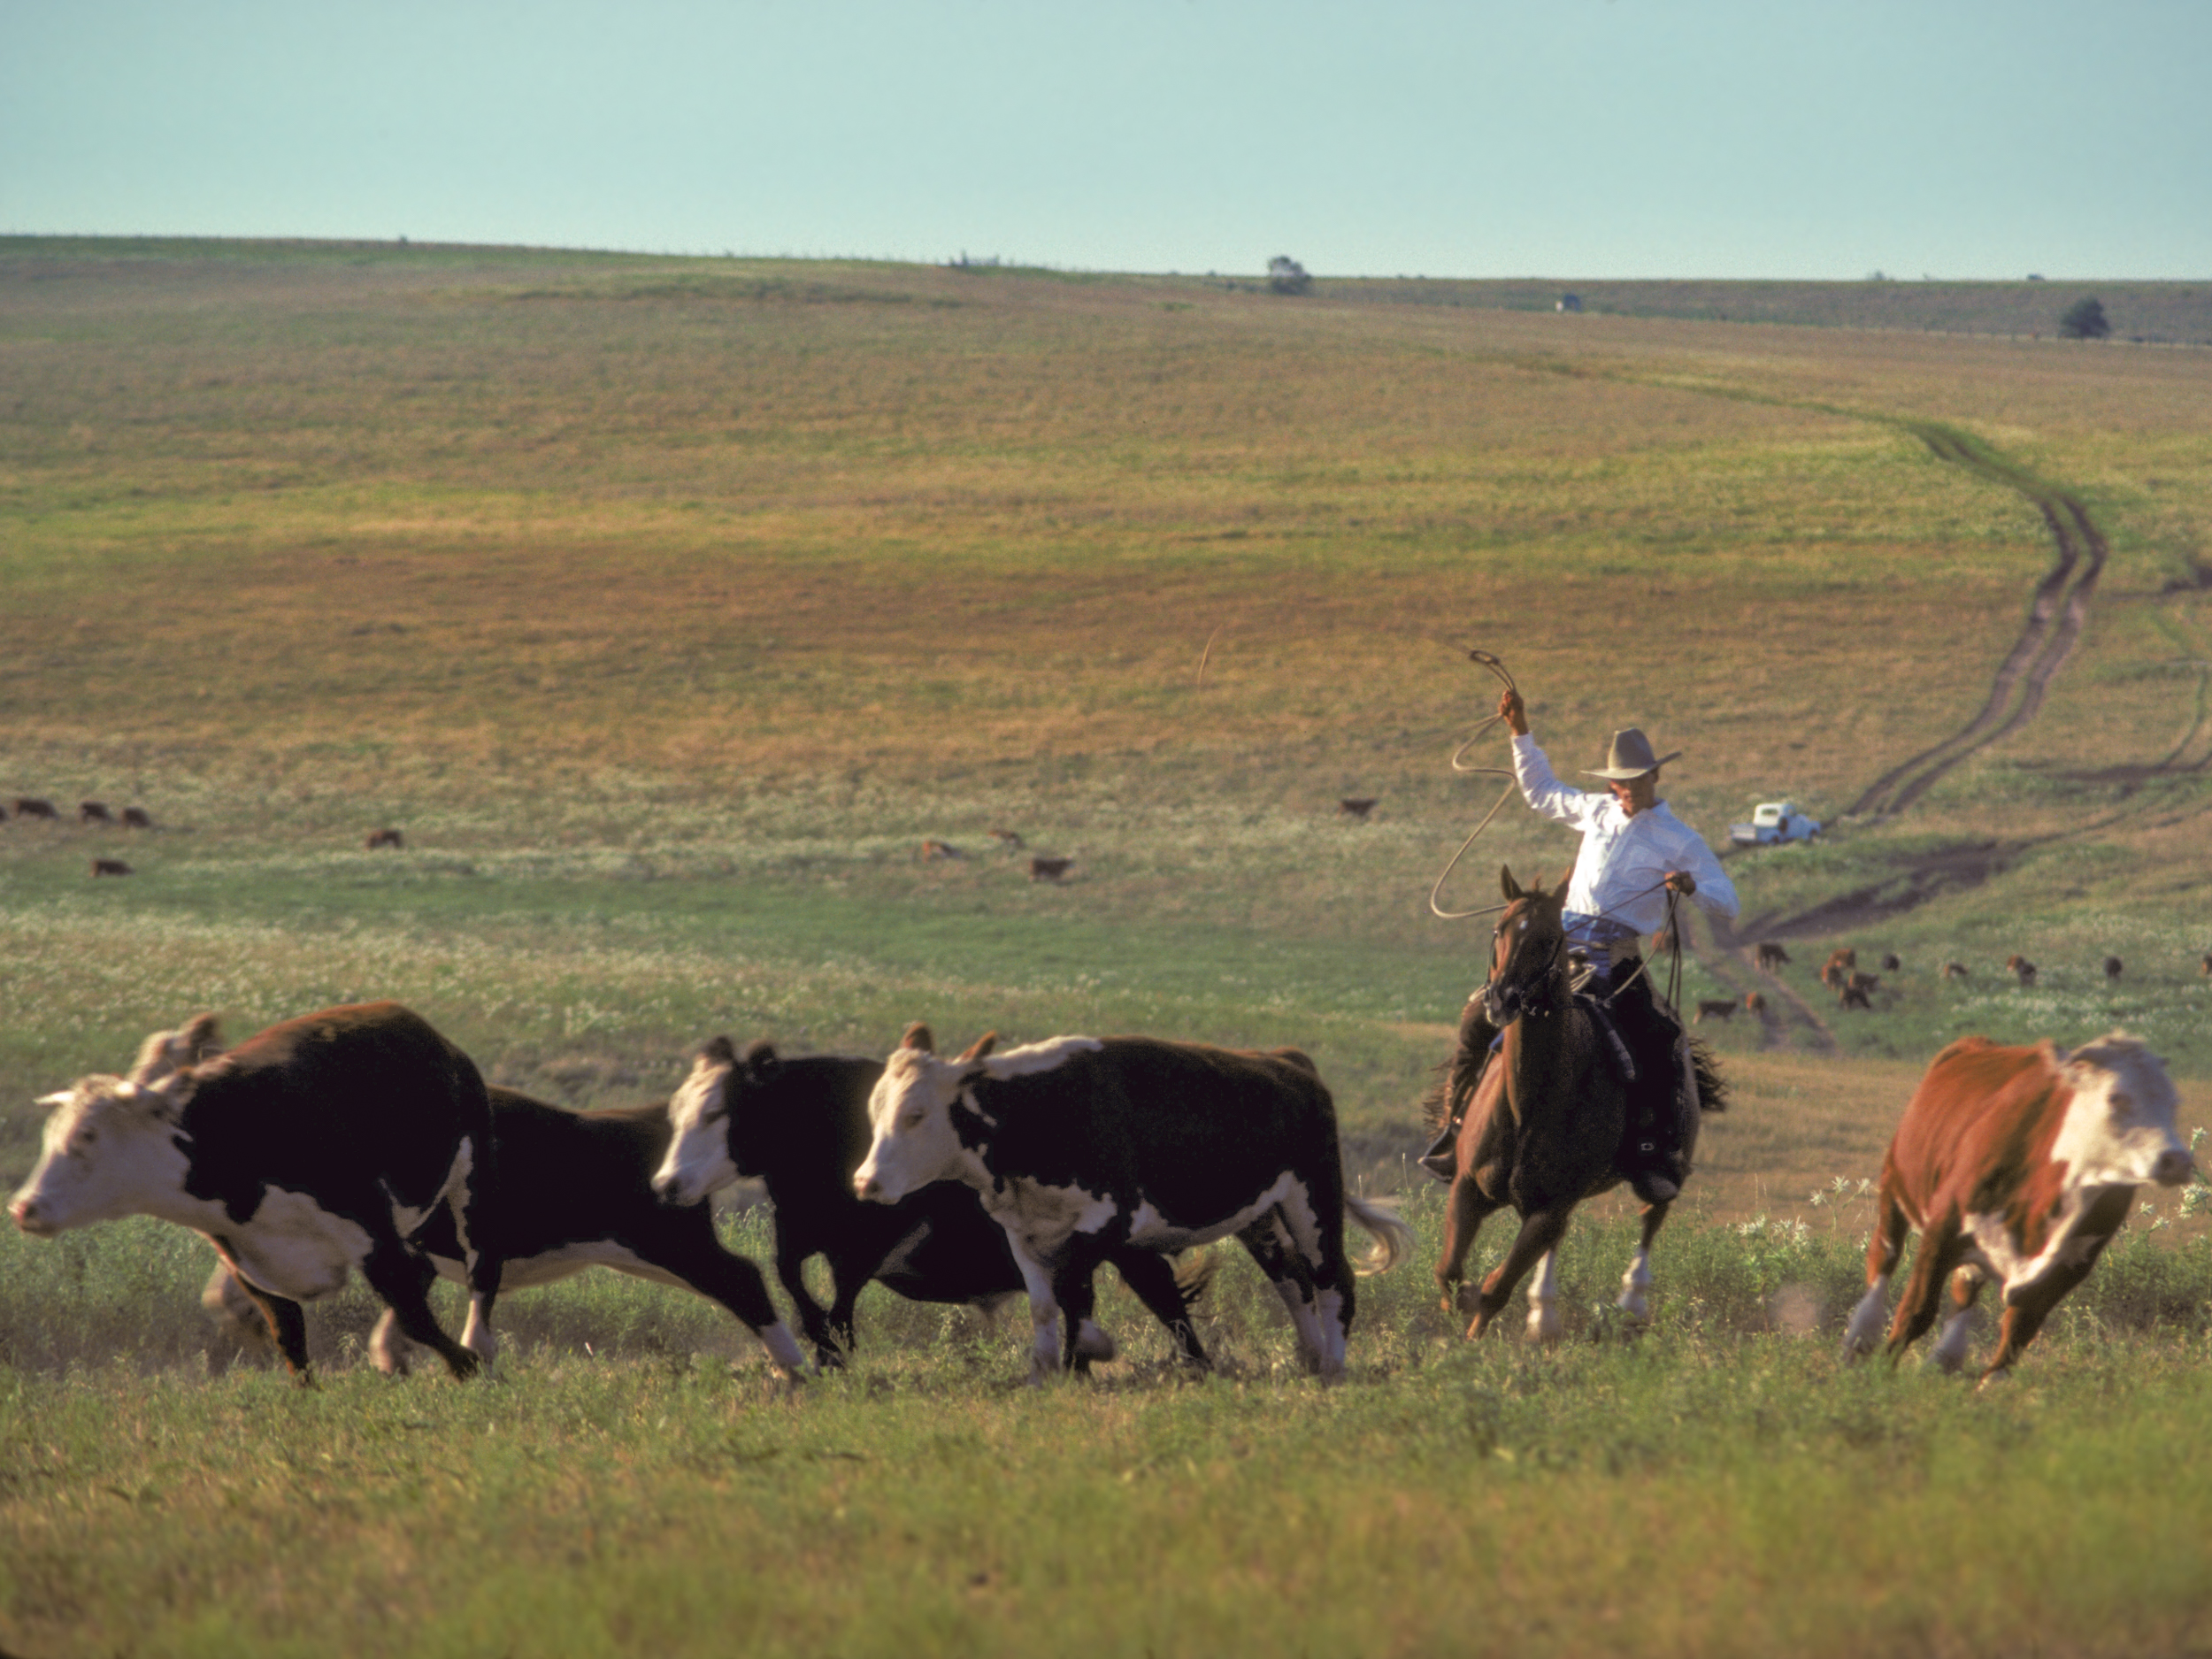 Staged cattle round-up for catalog cover Copyright © Kipp Baker, All rights reserved